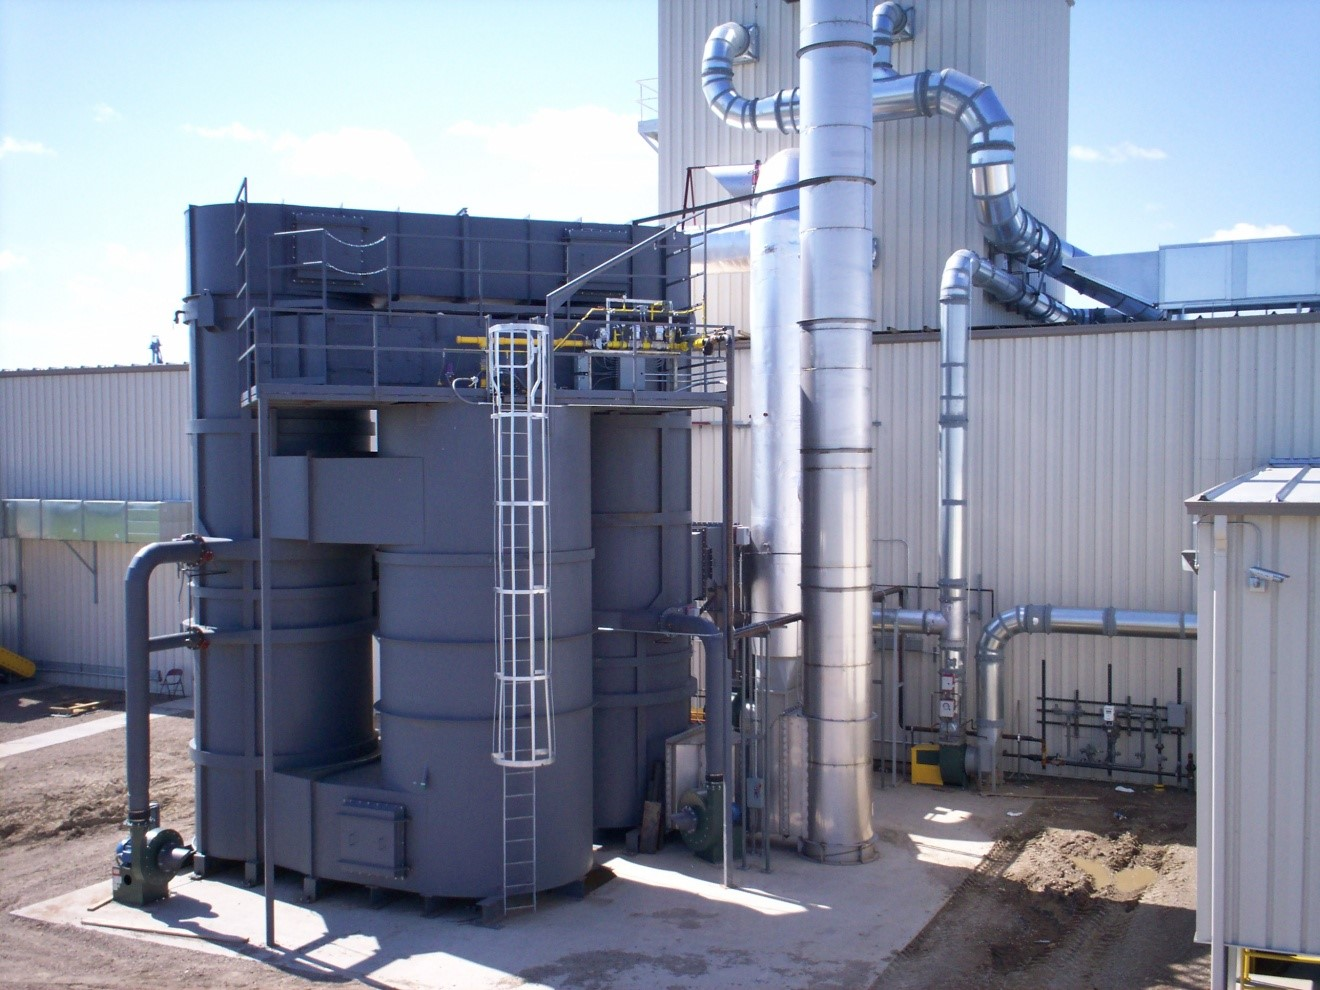 QUADRANT SRS Silicone Series Recuperative Thermal Oxidizer 22,500 with Secondary Heat Recovery